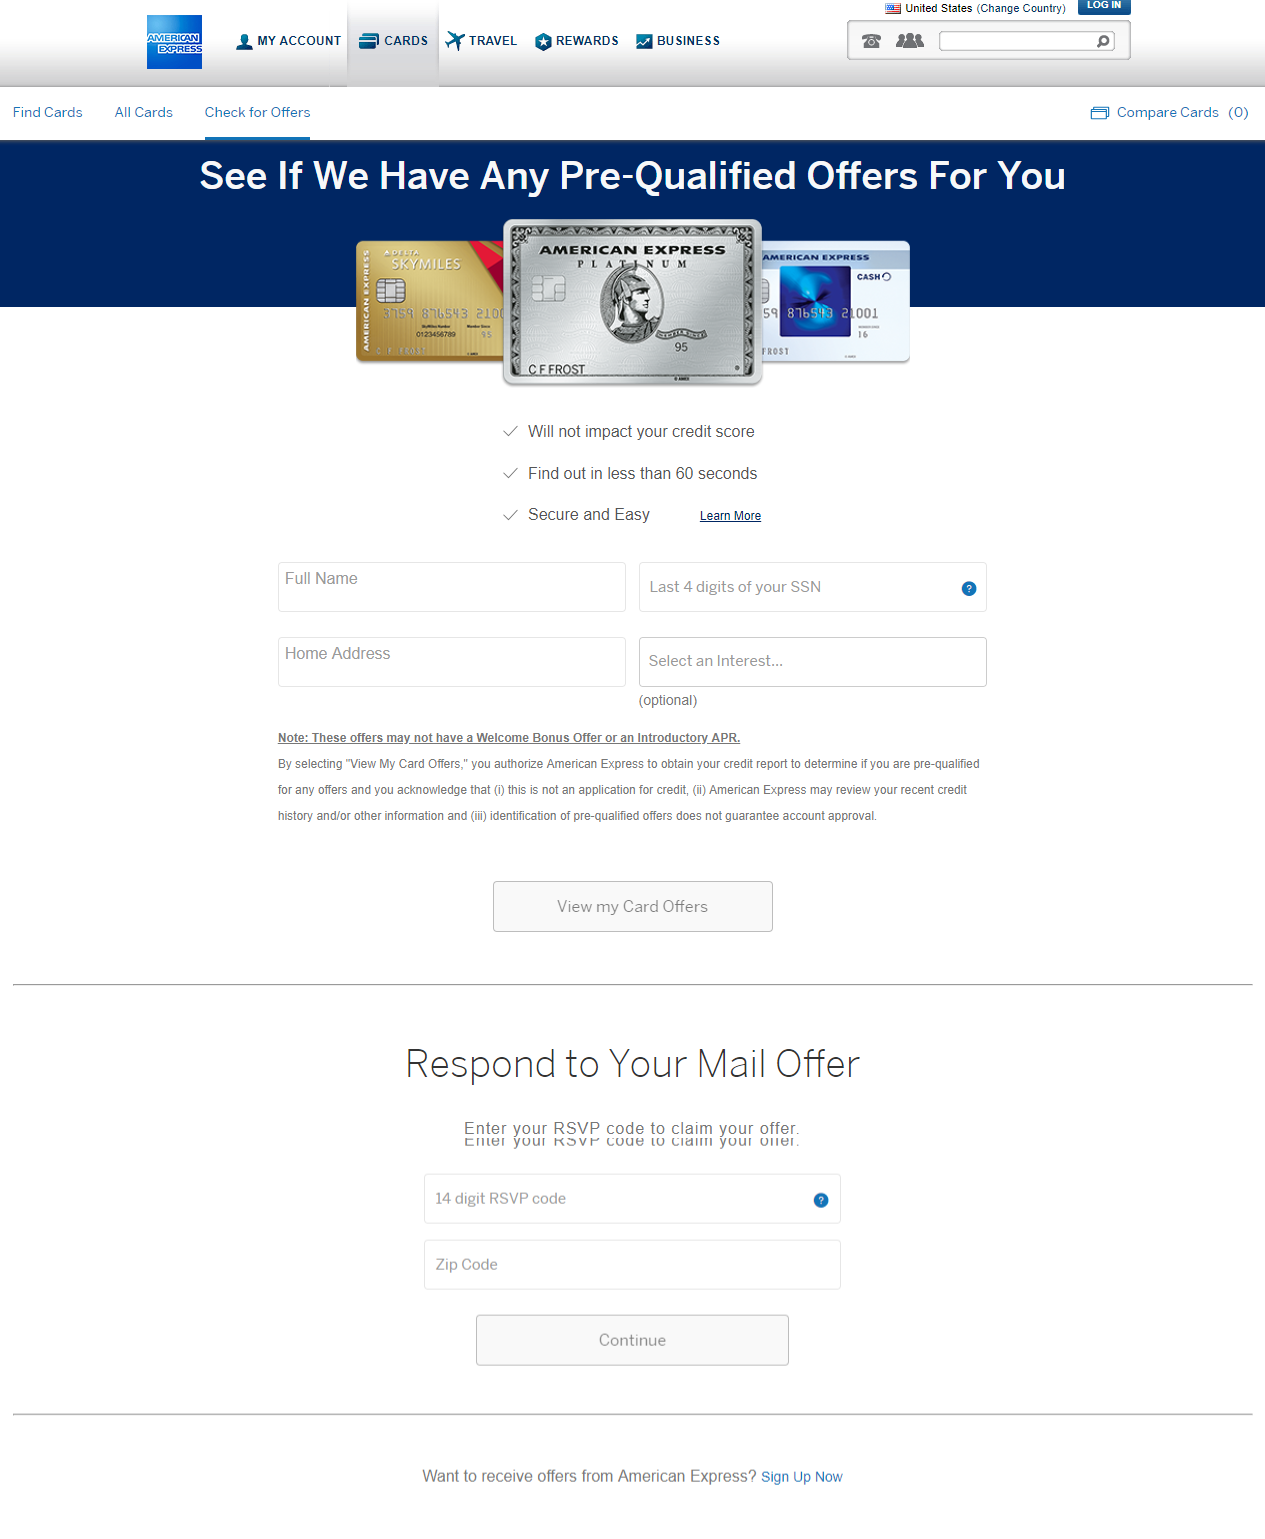 American Express Credit Card Offers